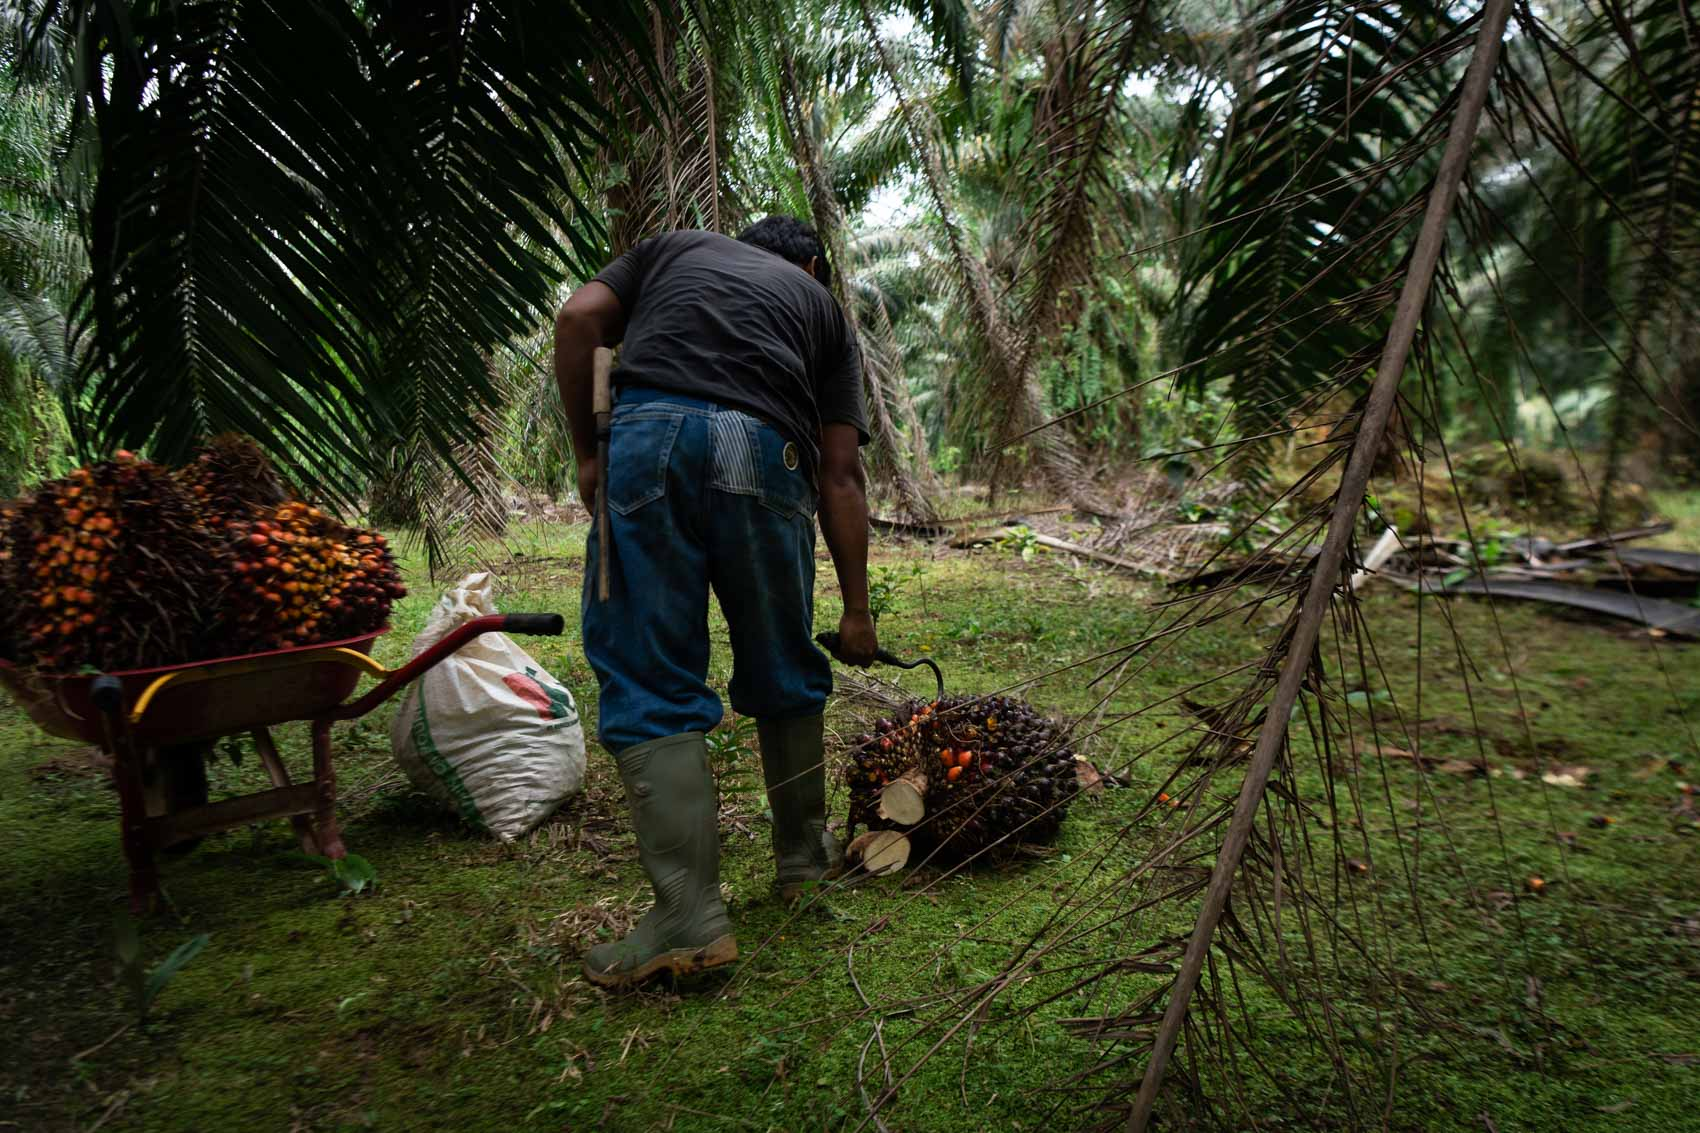 A palm oil worker hooking palm oil next to a wheel barrow filled with palm oil